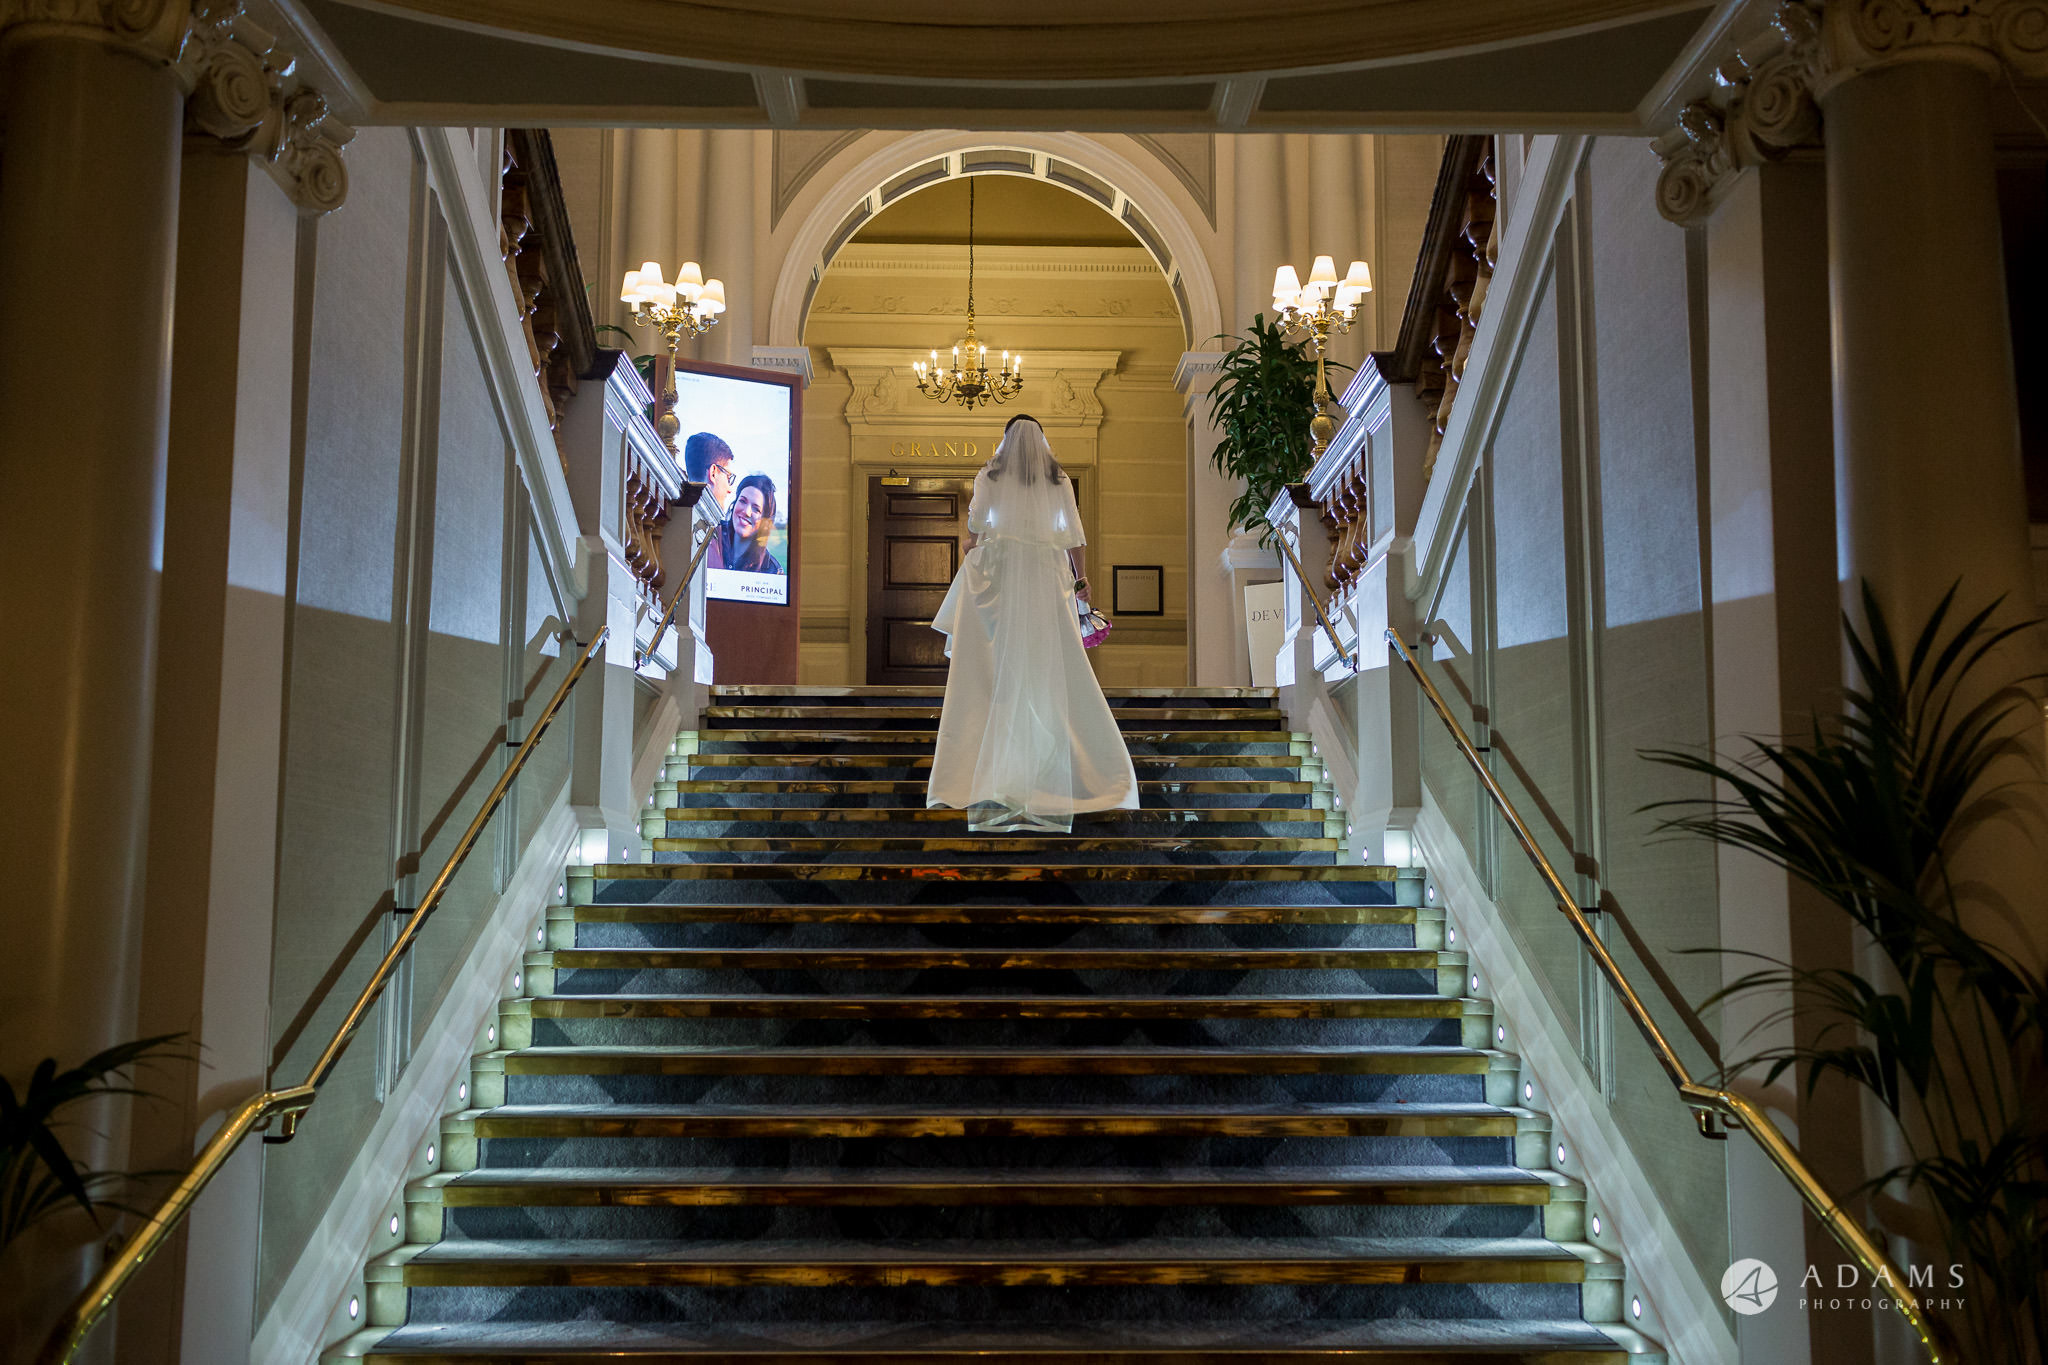 De Vere grand connaught rooms bride on the stairs